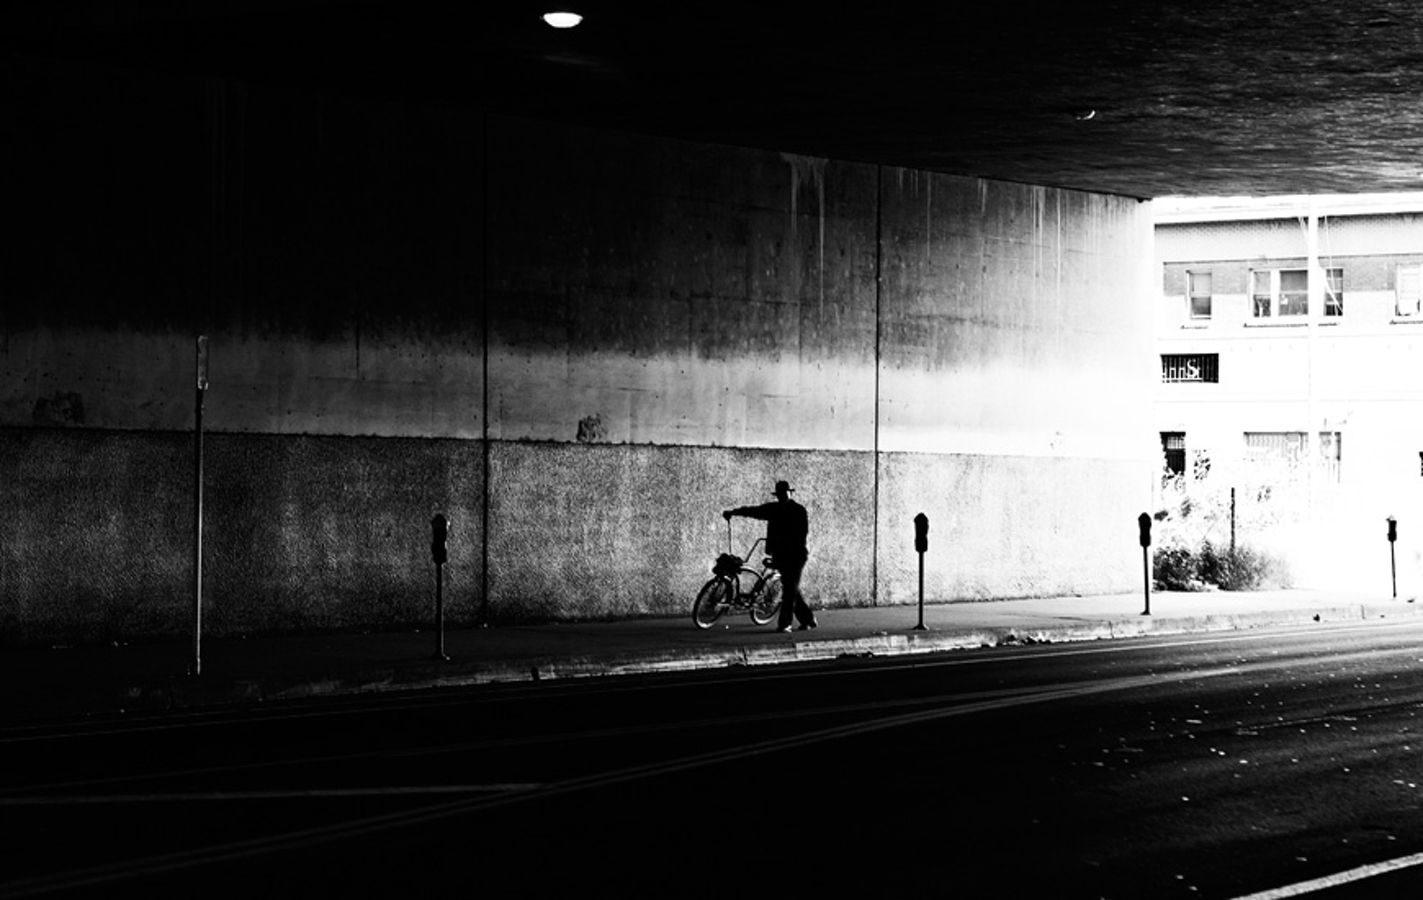 Cycle Under Bridge